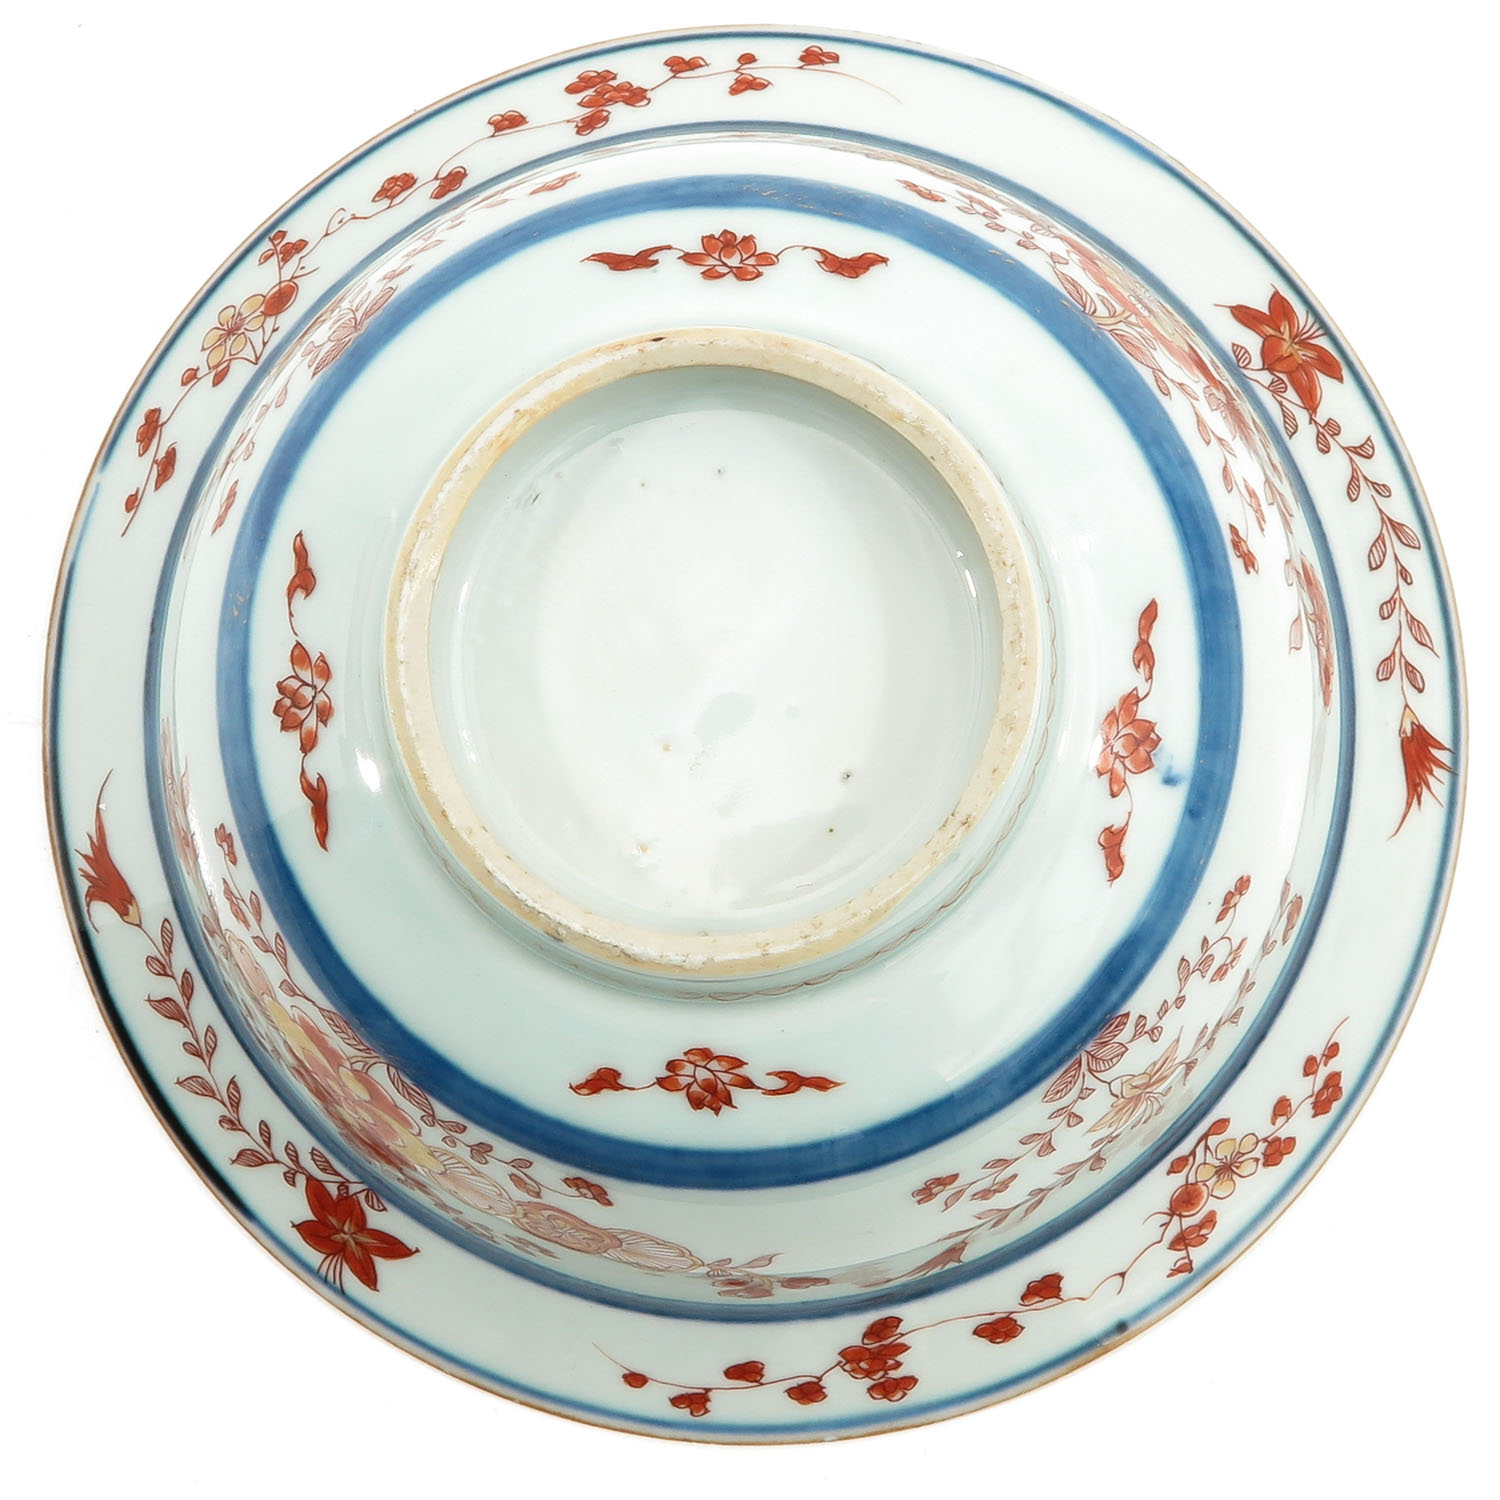 A Blue and Iron Red Bowl - Image 6 of 9